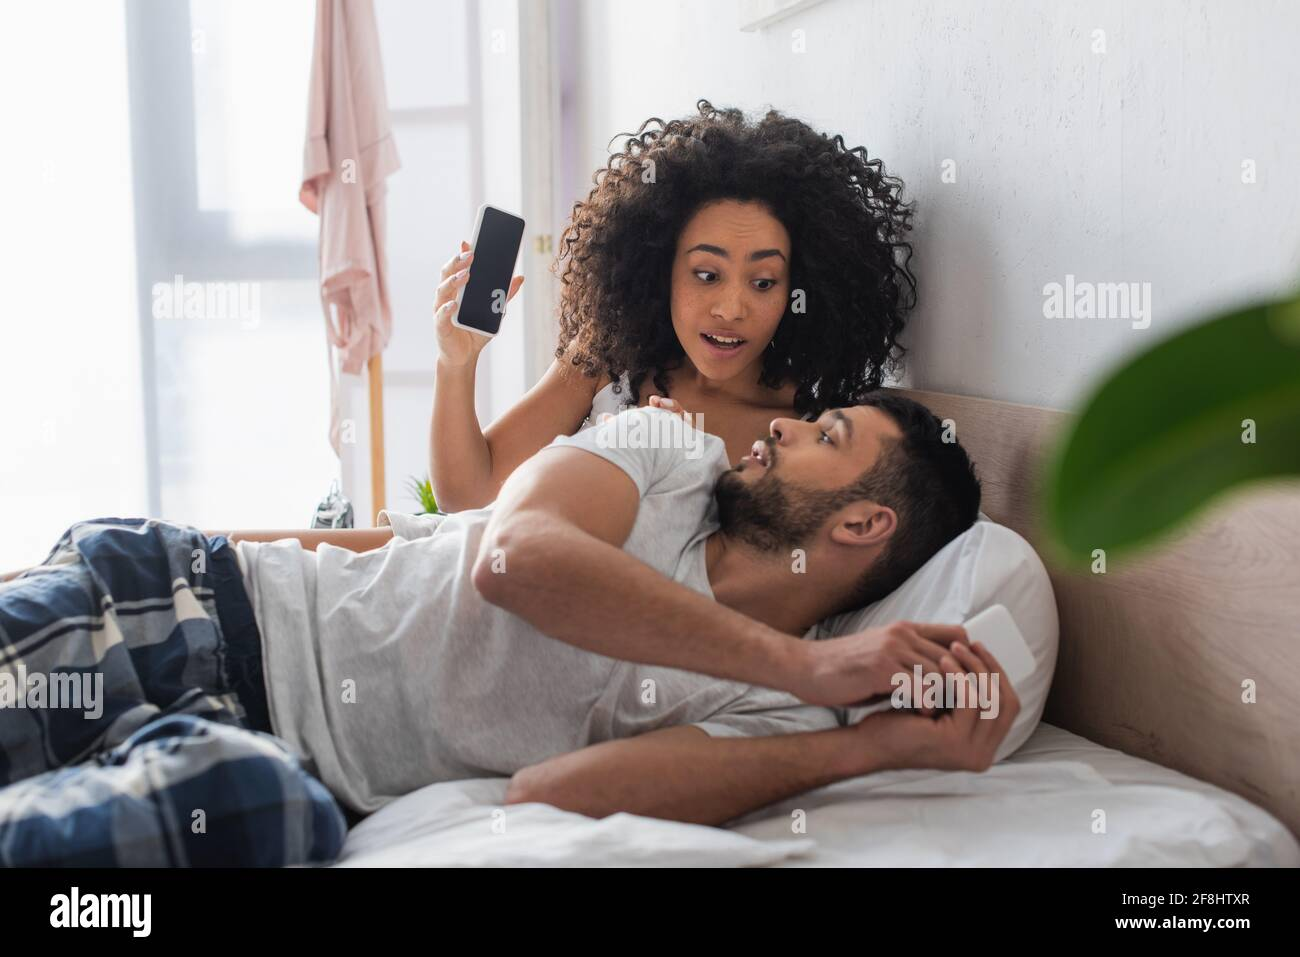 surprised african american woman looking at boyfriend while holding smartphone with blank screen in bedroom Stock Photo